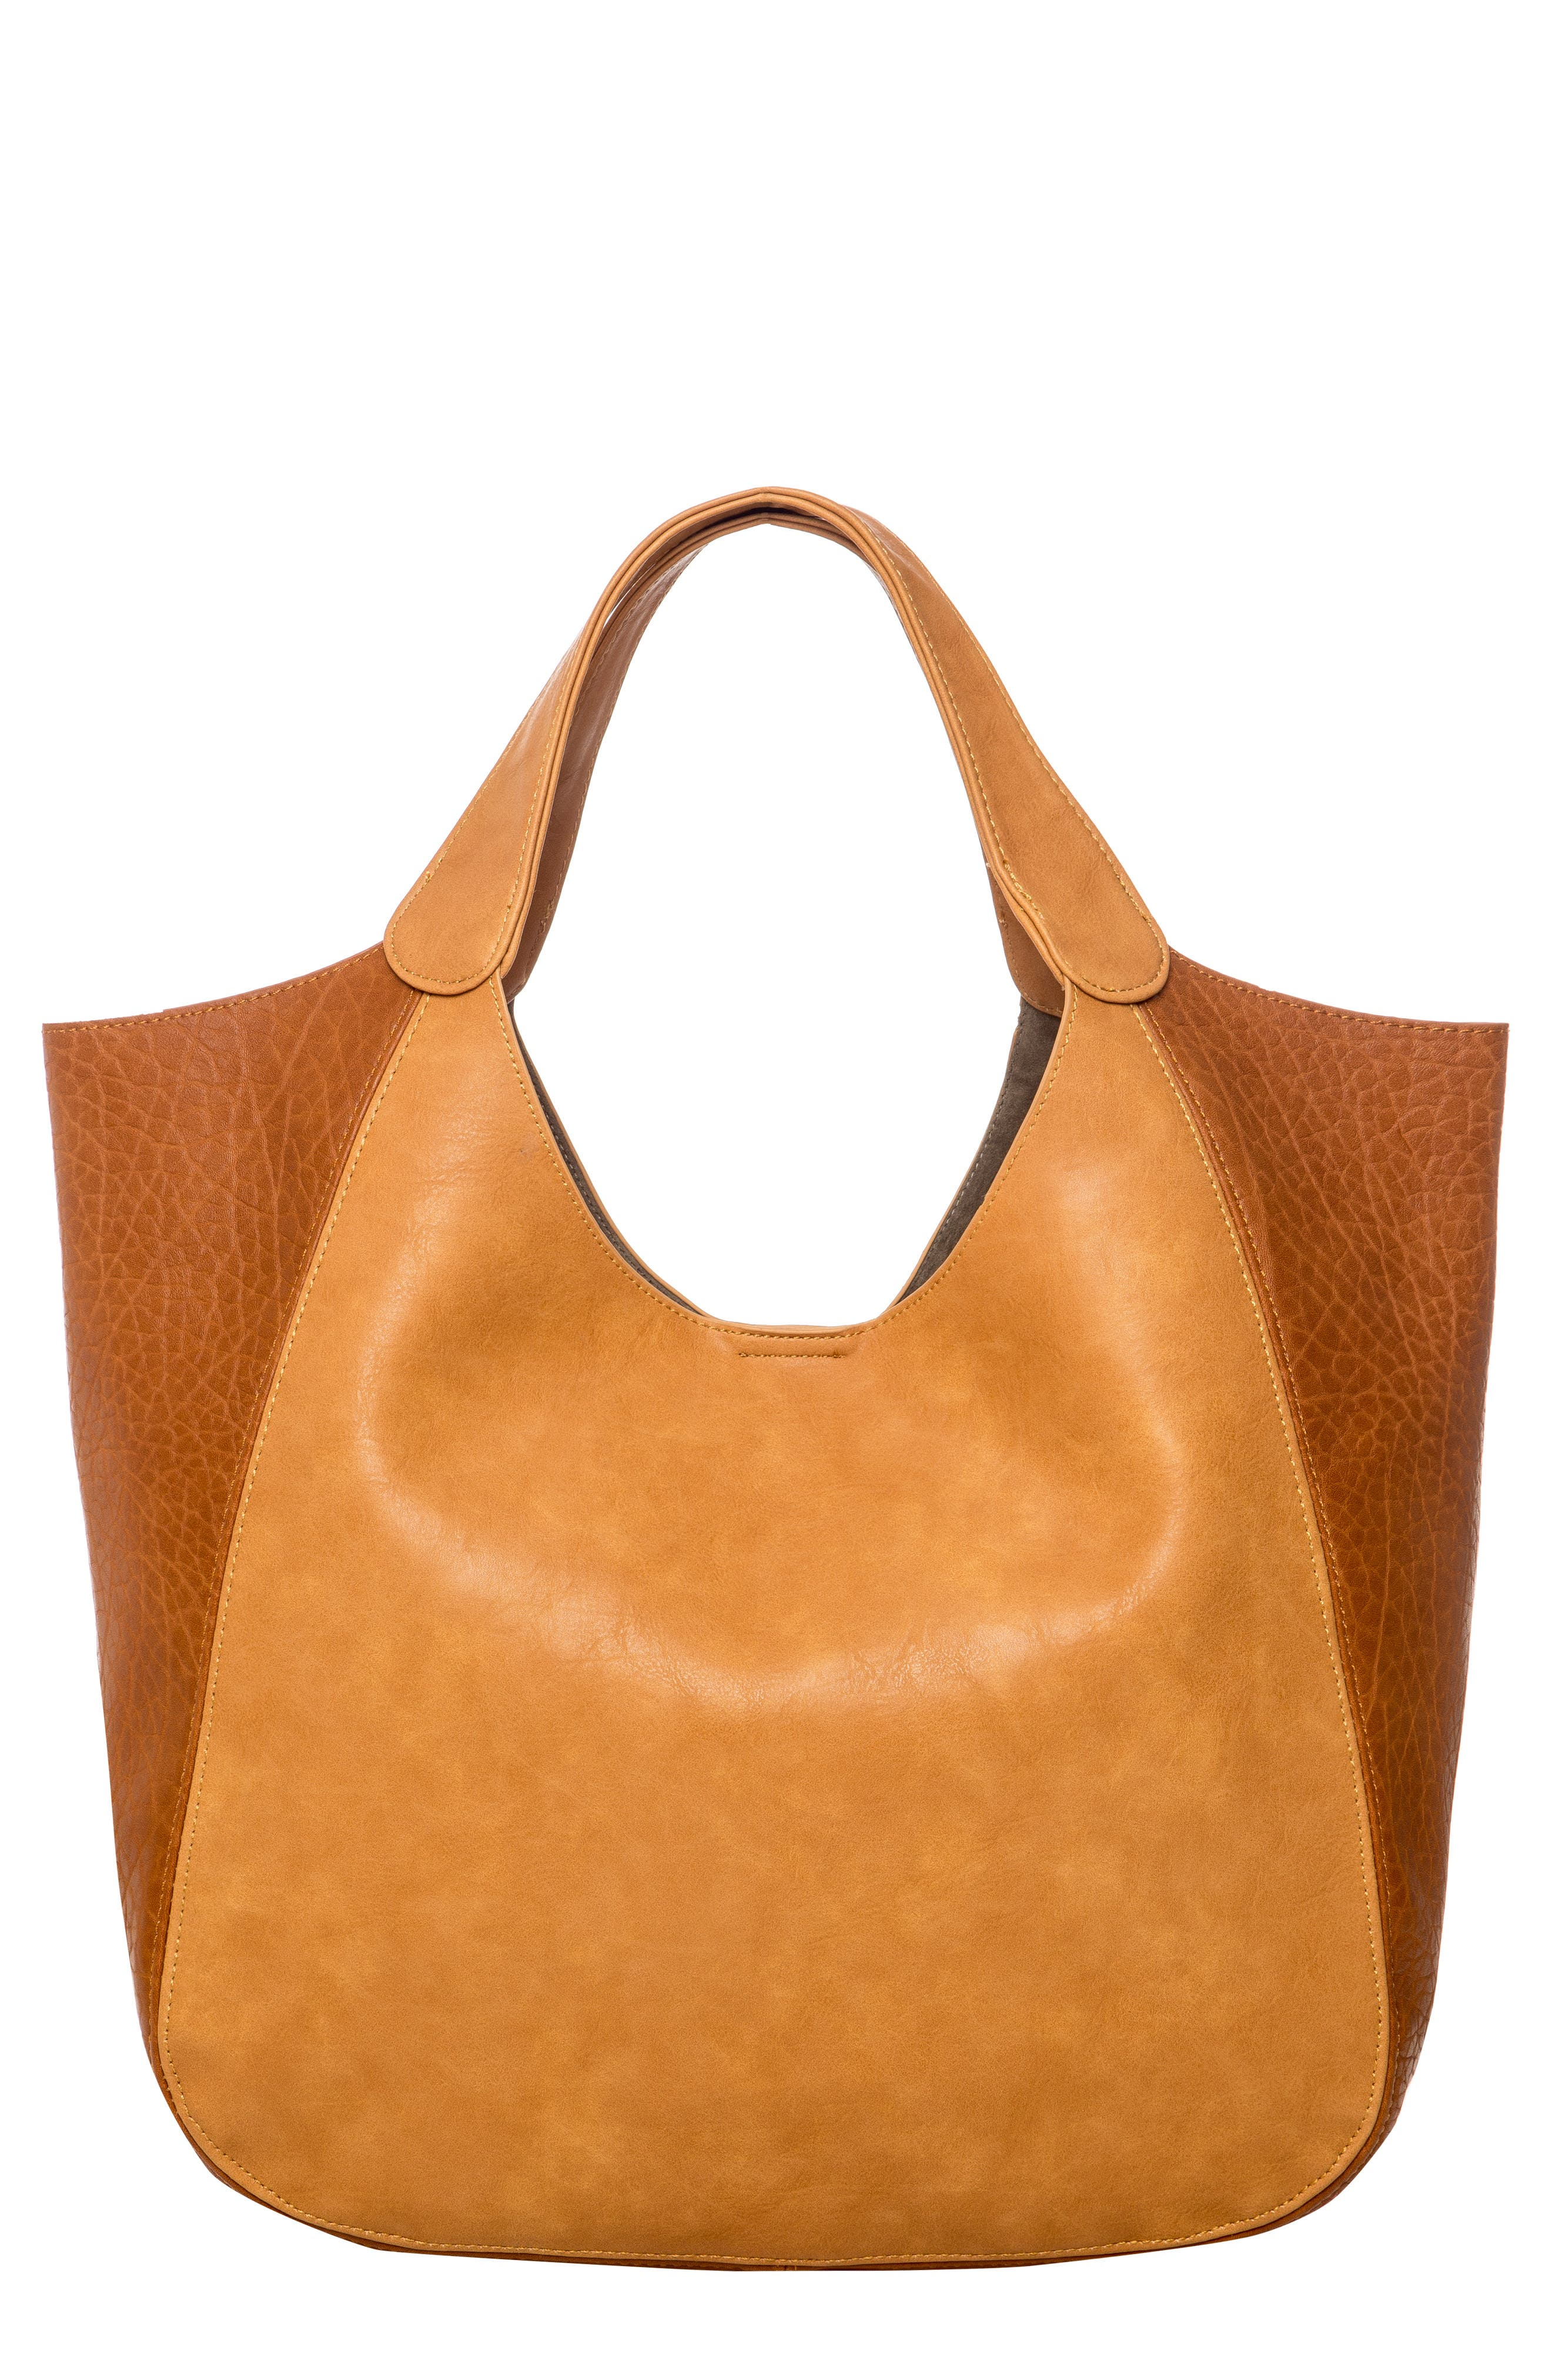 Masterpiece Vegan Leather Tote,                             Alternate thumbnail 5, color,                             200